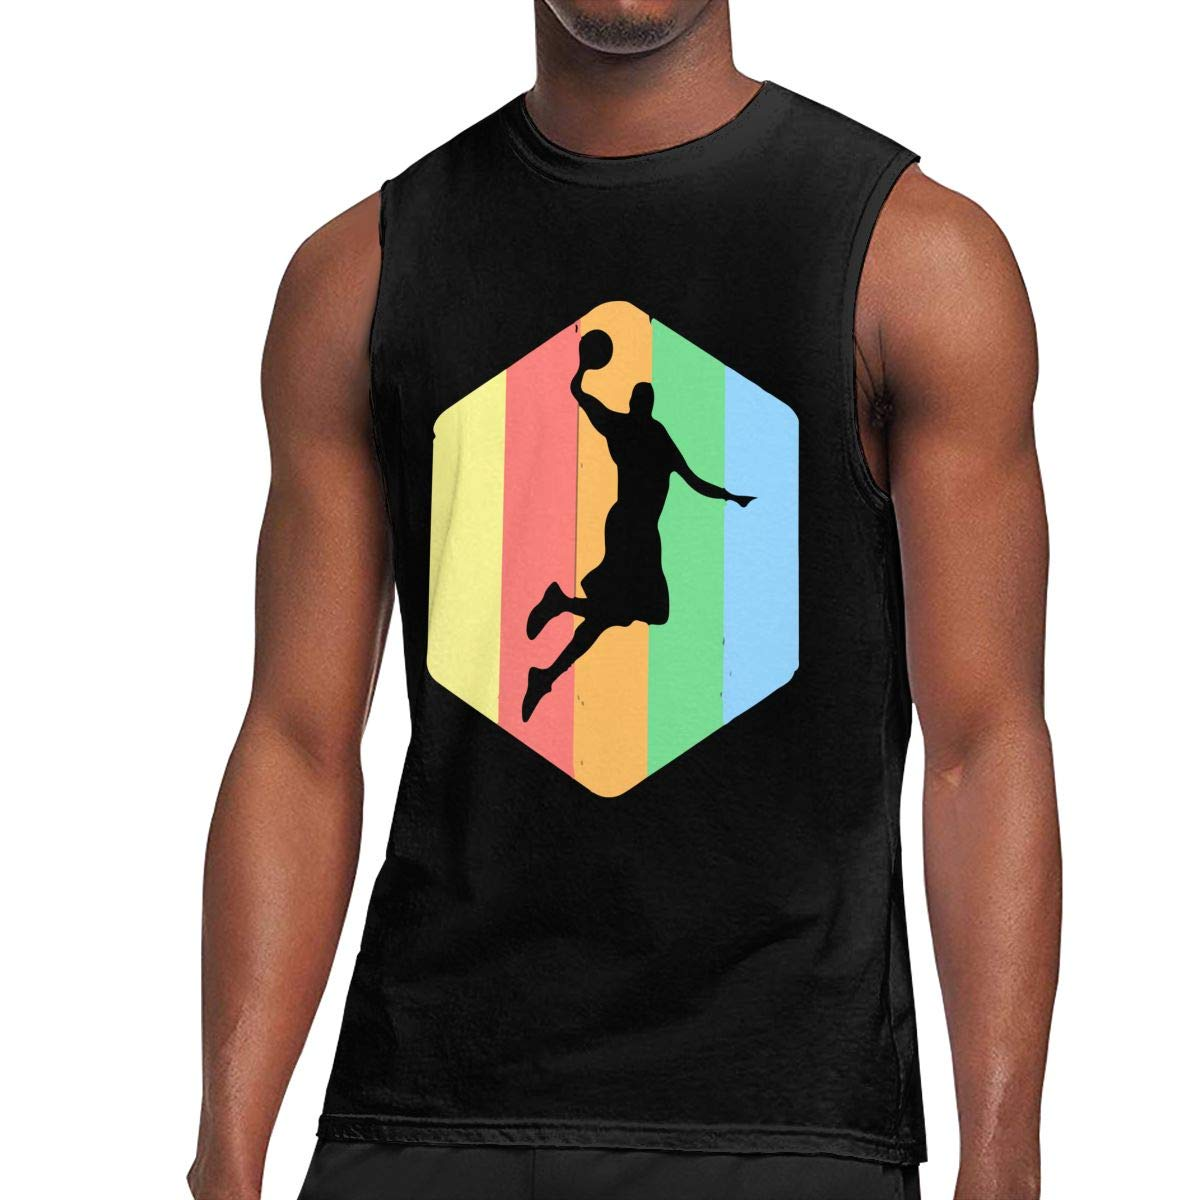 Comfortable 100/% Cotton Waistcoat for Mens Au68pI@l Mens Basketball Tank Top